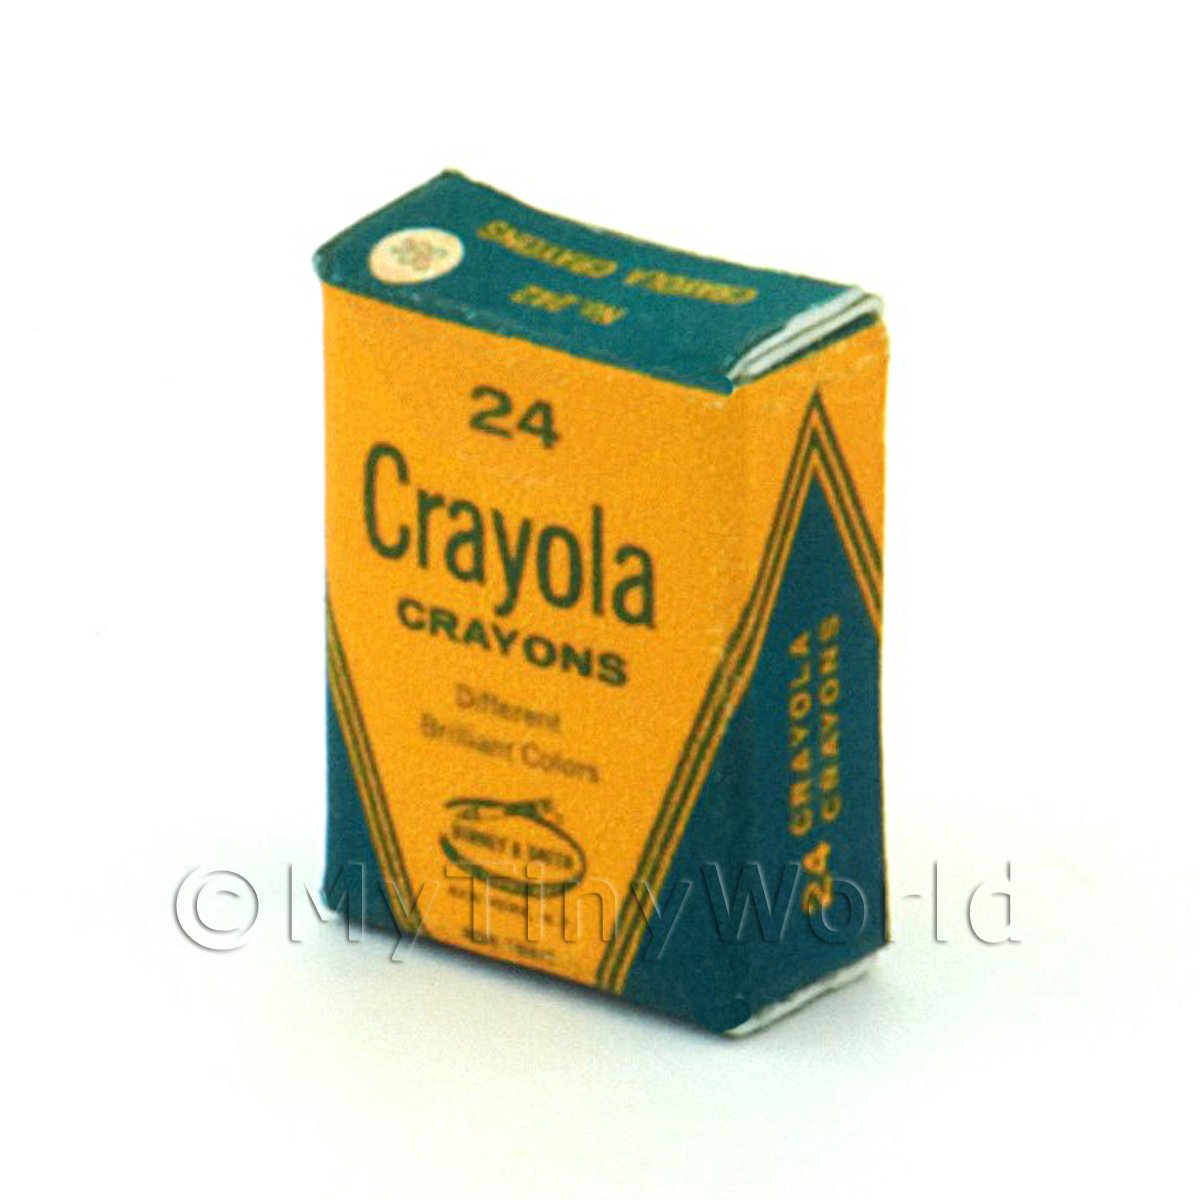 Dolls House Miniature Crayola Crayons Box From 1970s